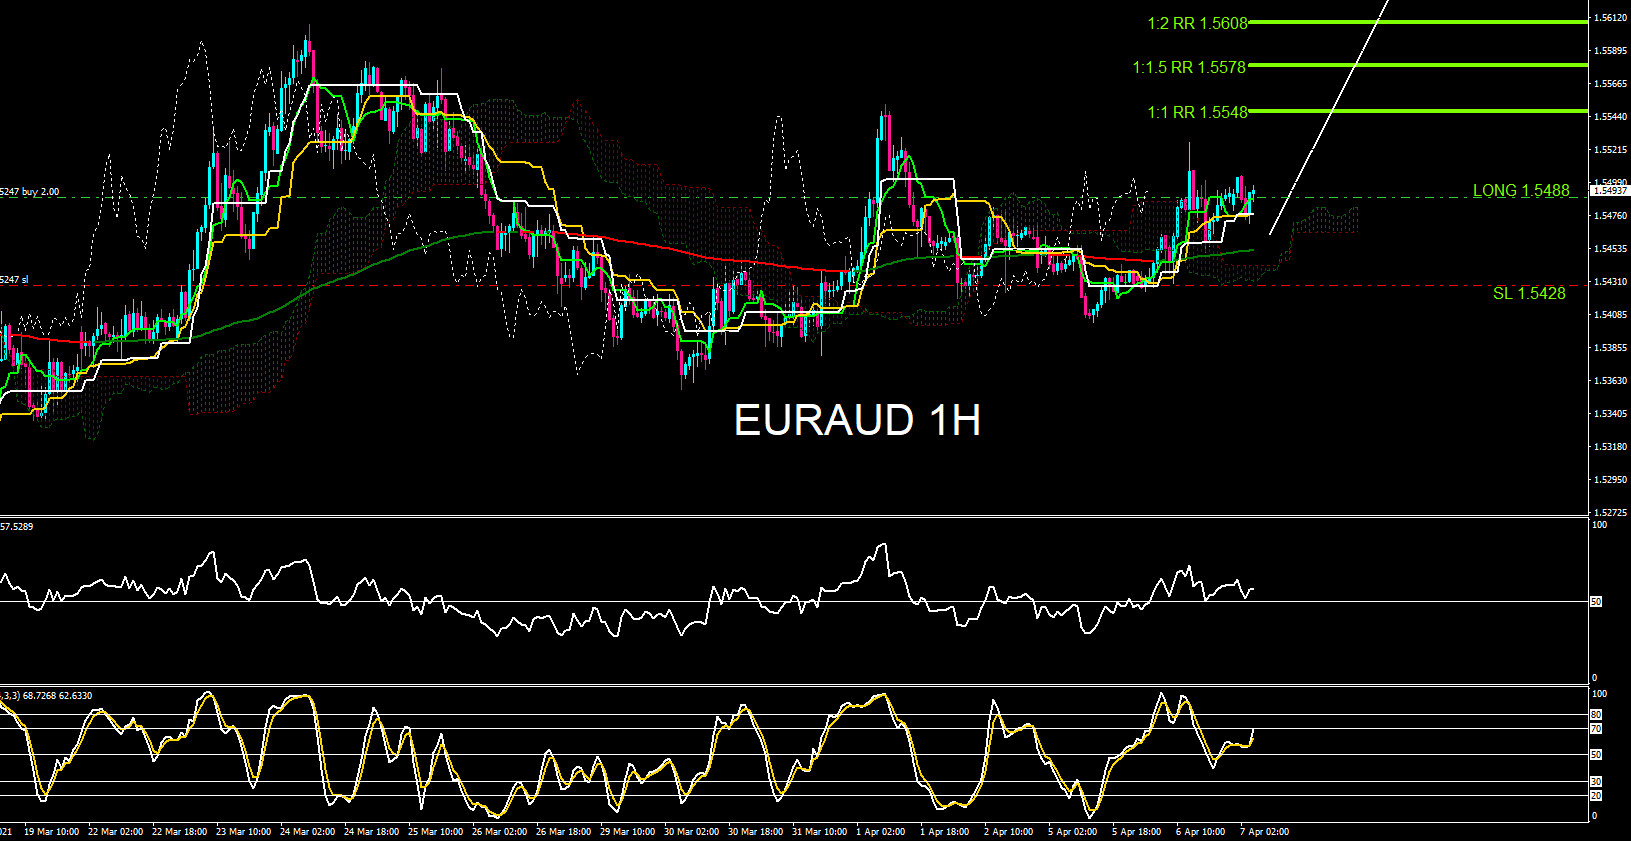 EURAUD : Rallied Higher as Expected